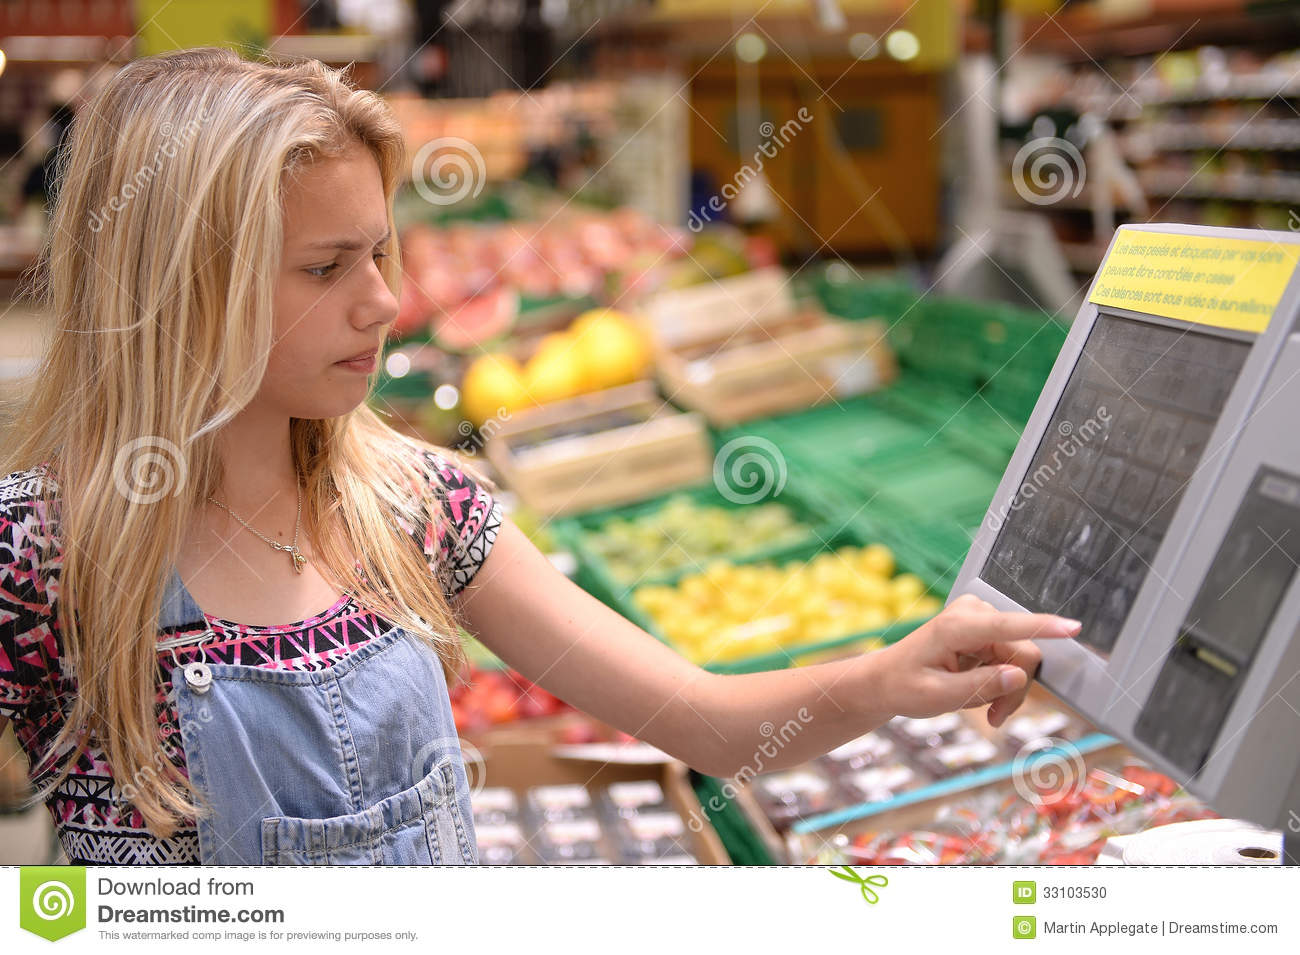 Girl weighing goods in shop